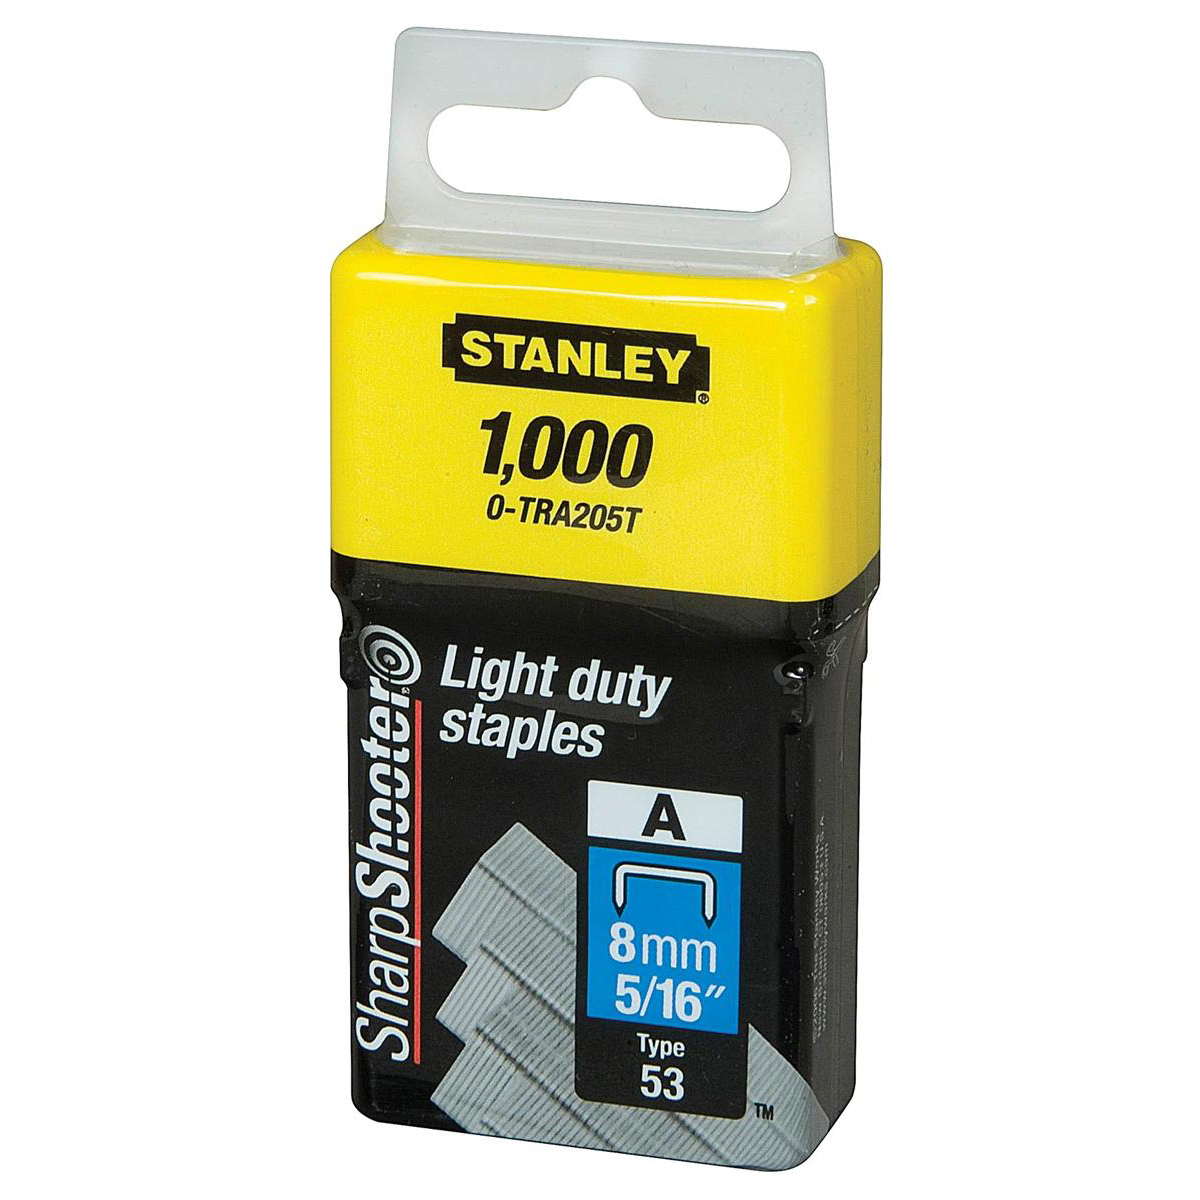 Stanley Light Duty Staples 8mm Ref 0-TRA205T Pack 1000